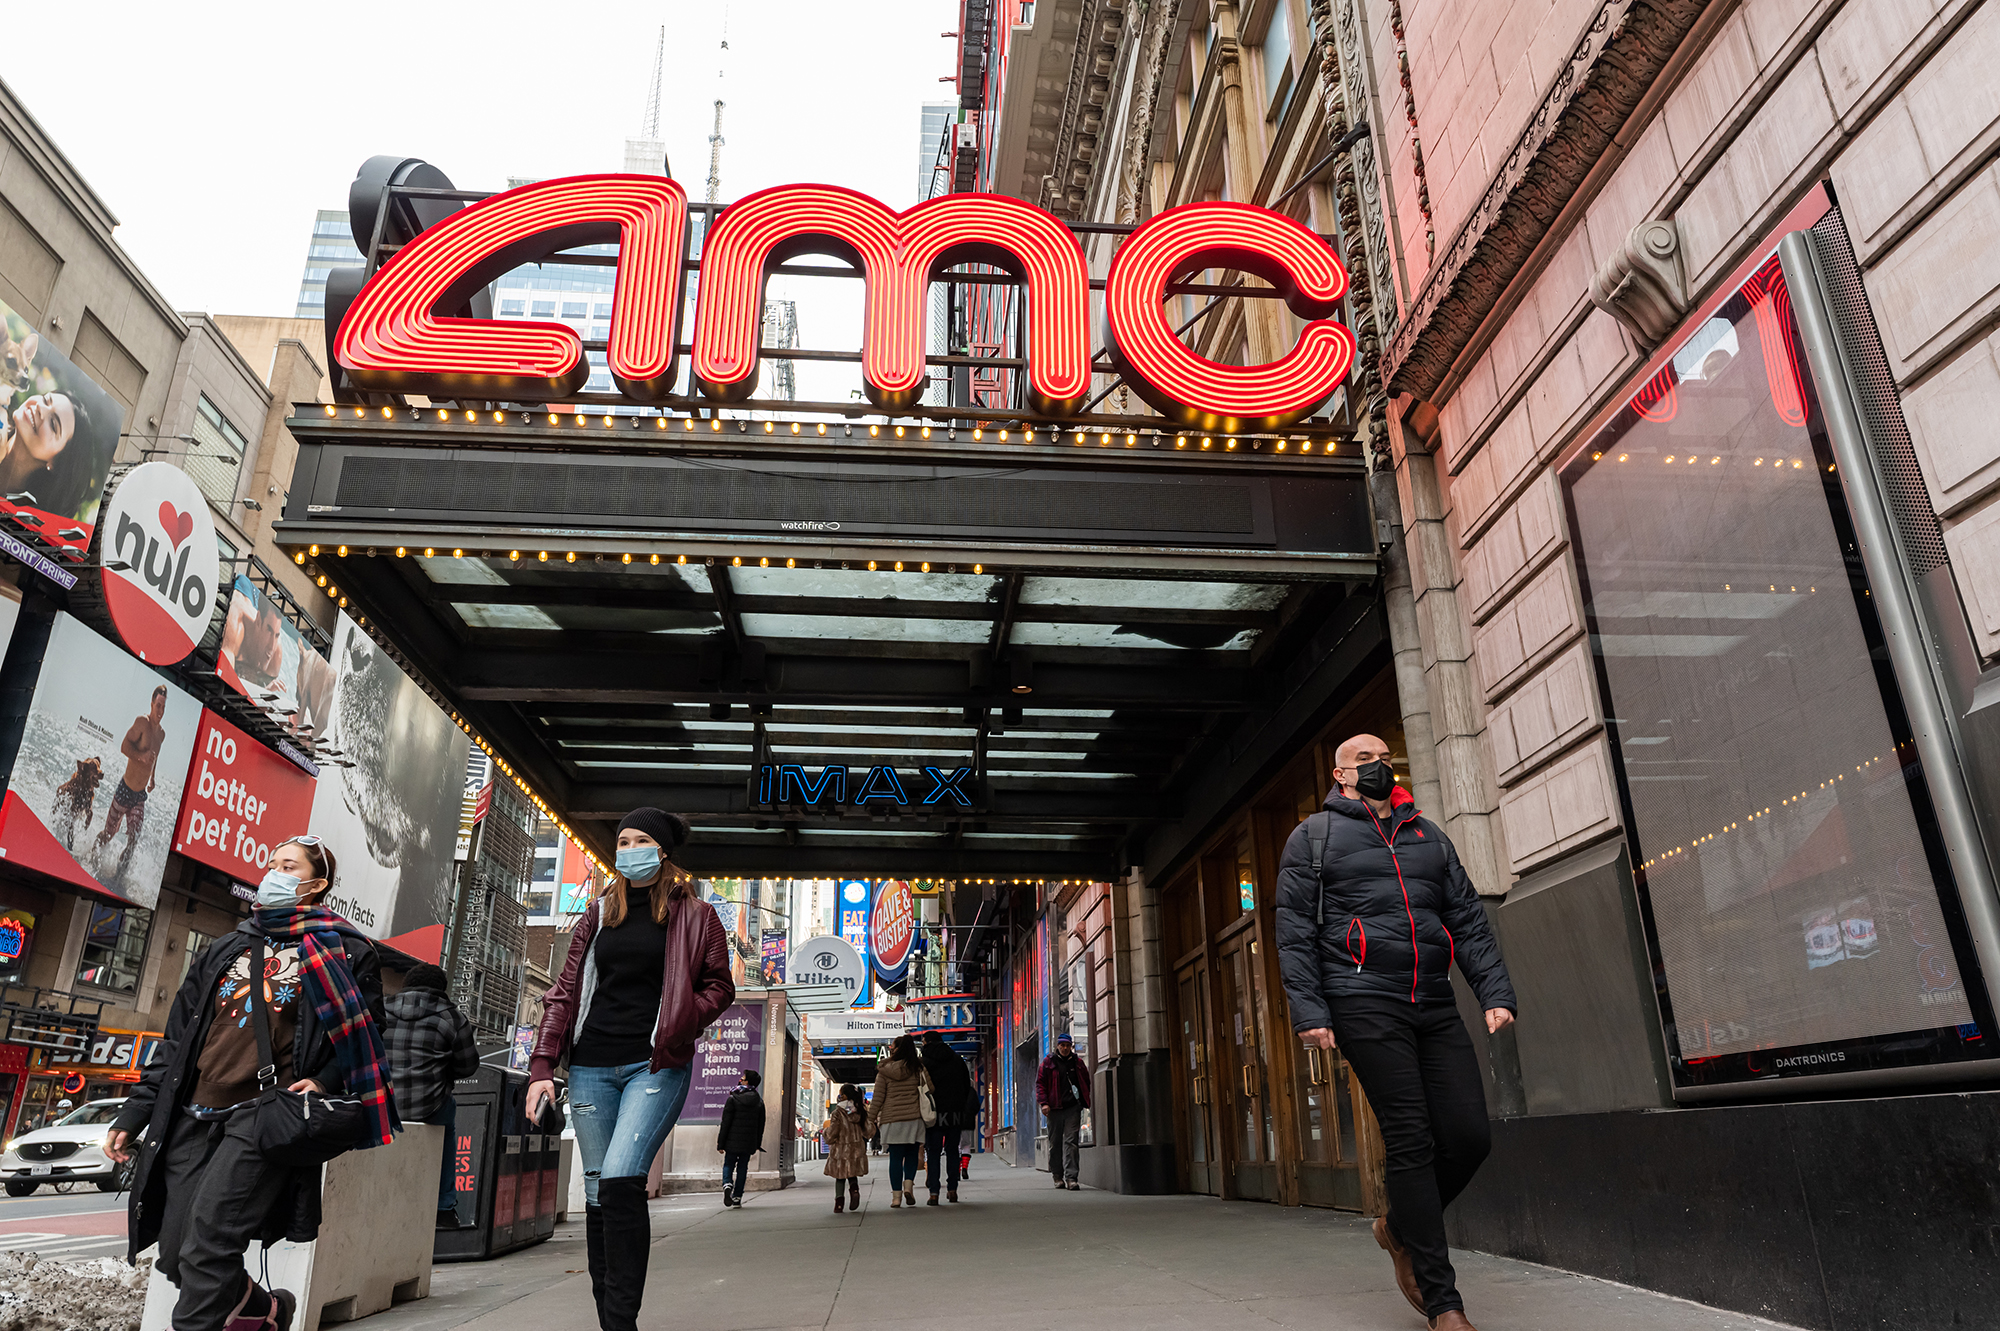 New York theaters are going to open. Now will anyone show up?